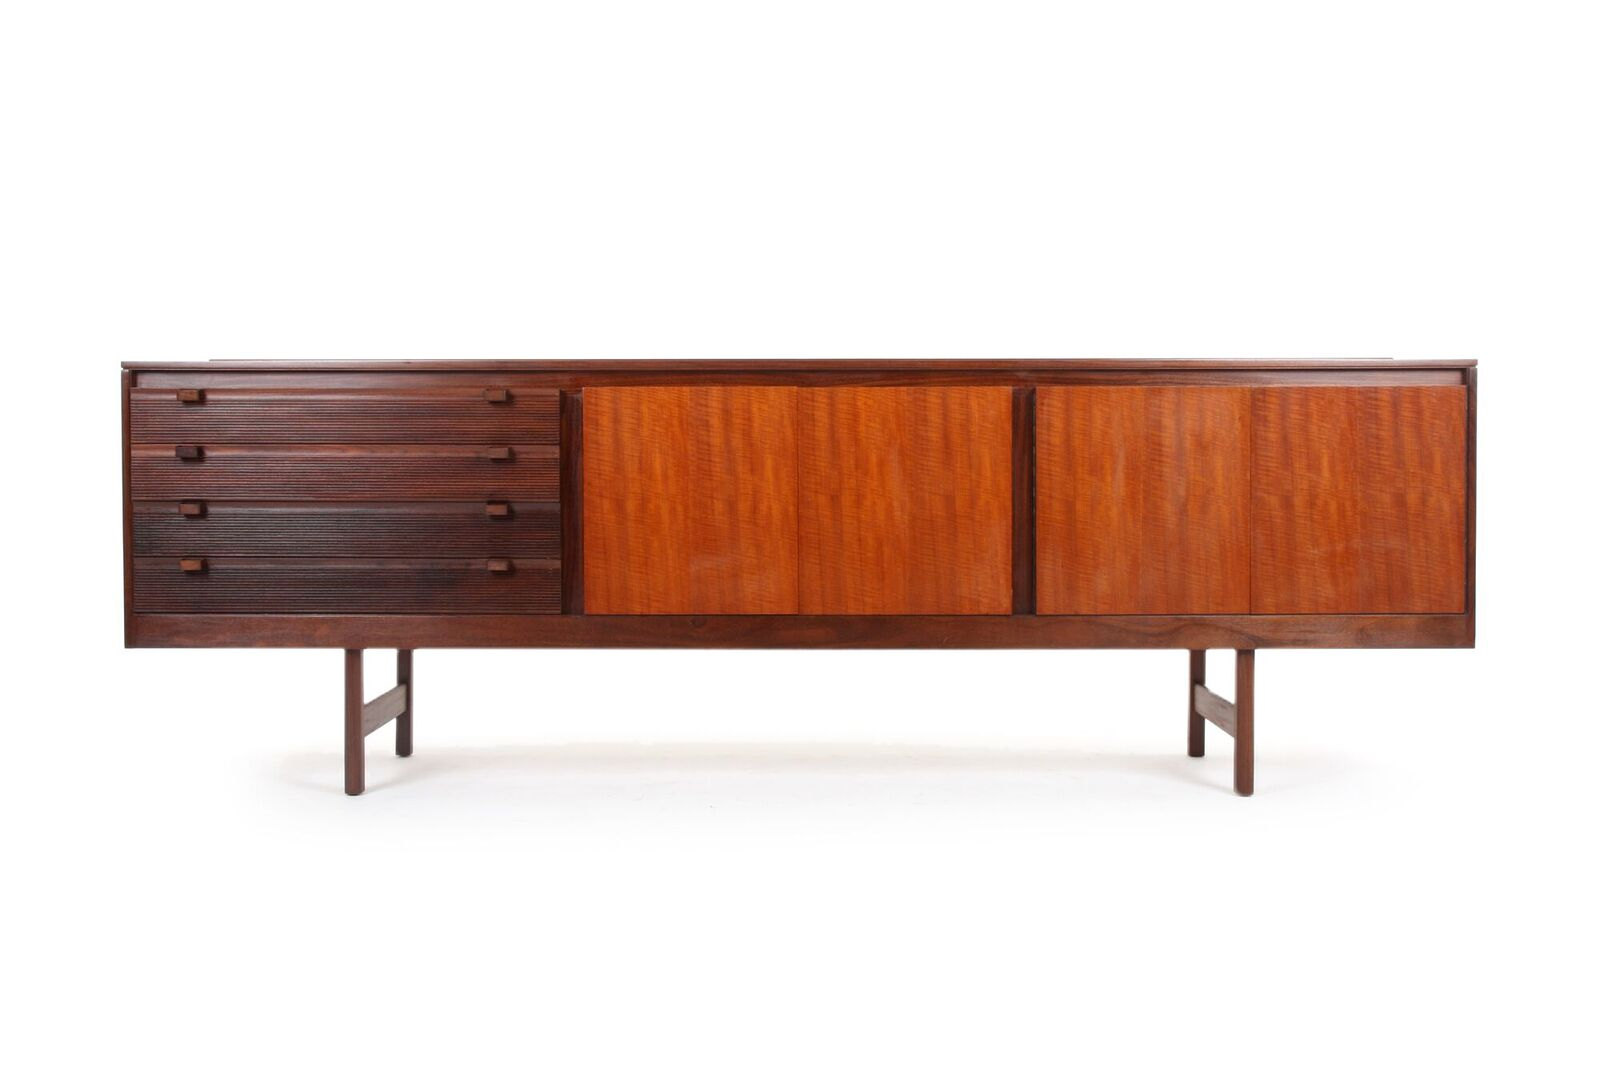 Archie Shine Knightsbridge Sideboard_LR_preview.jpeg